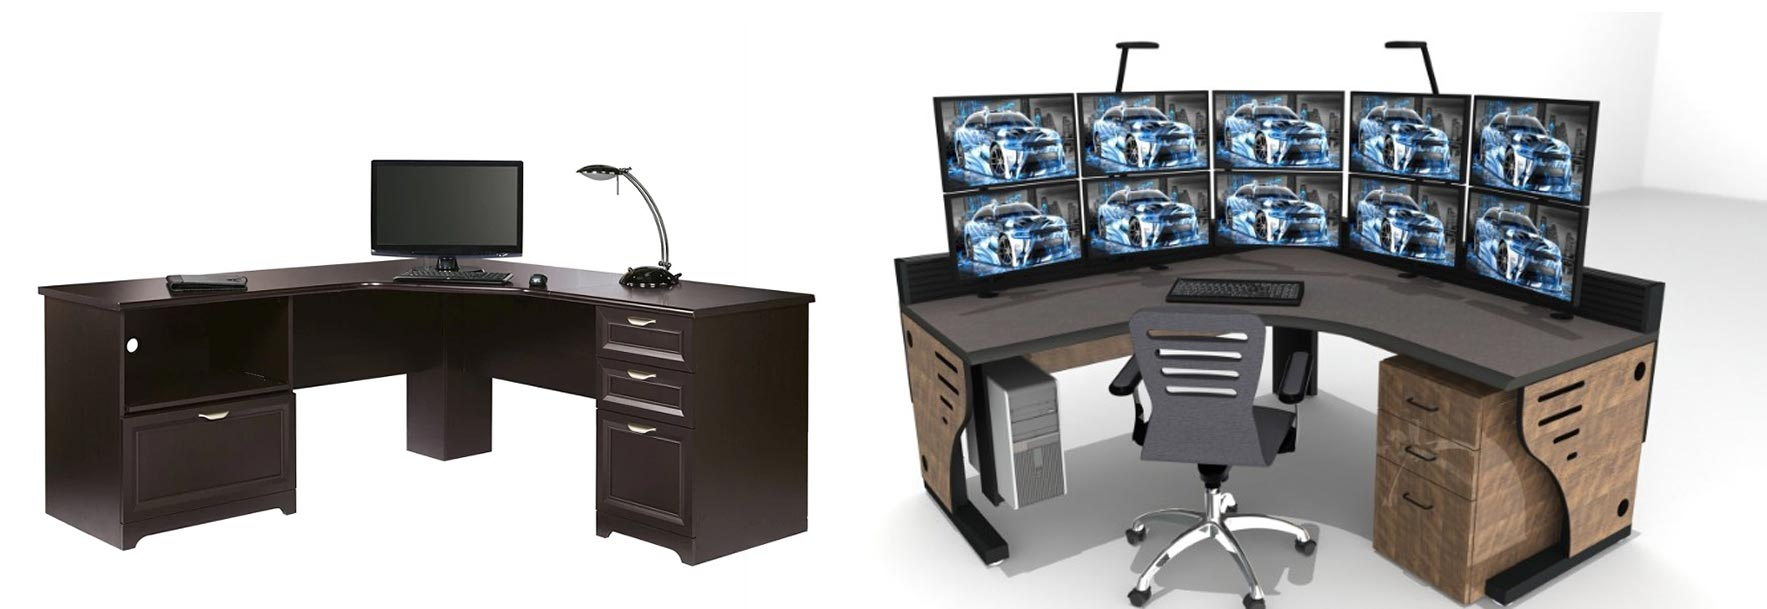 Control Room Desk Vs Specialized Console Furniture